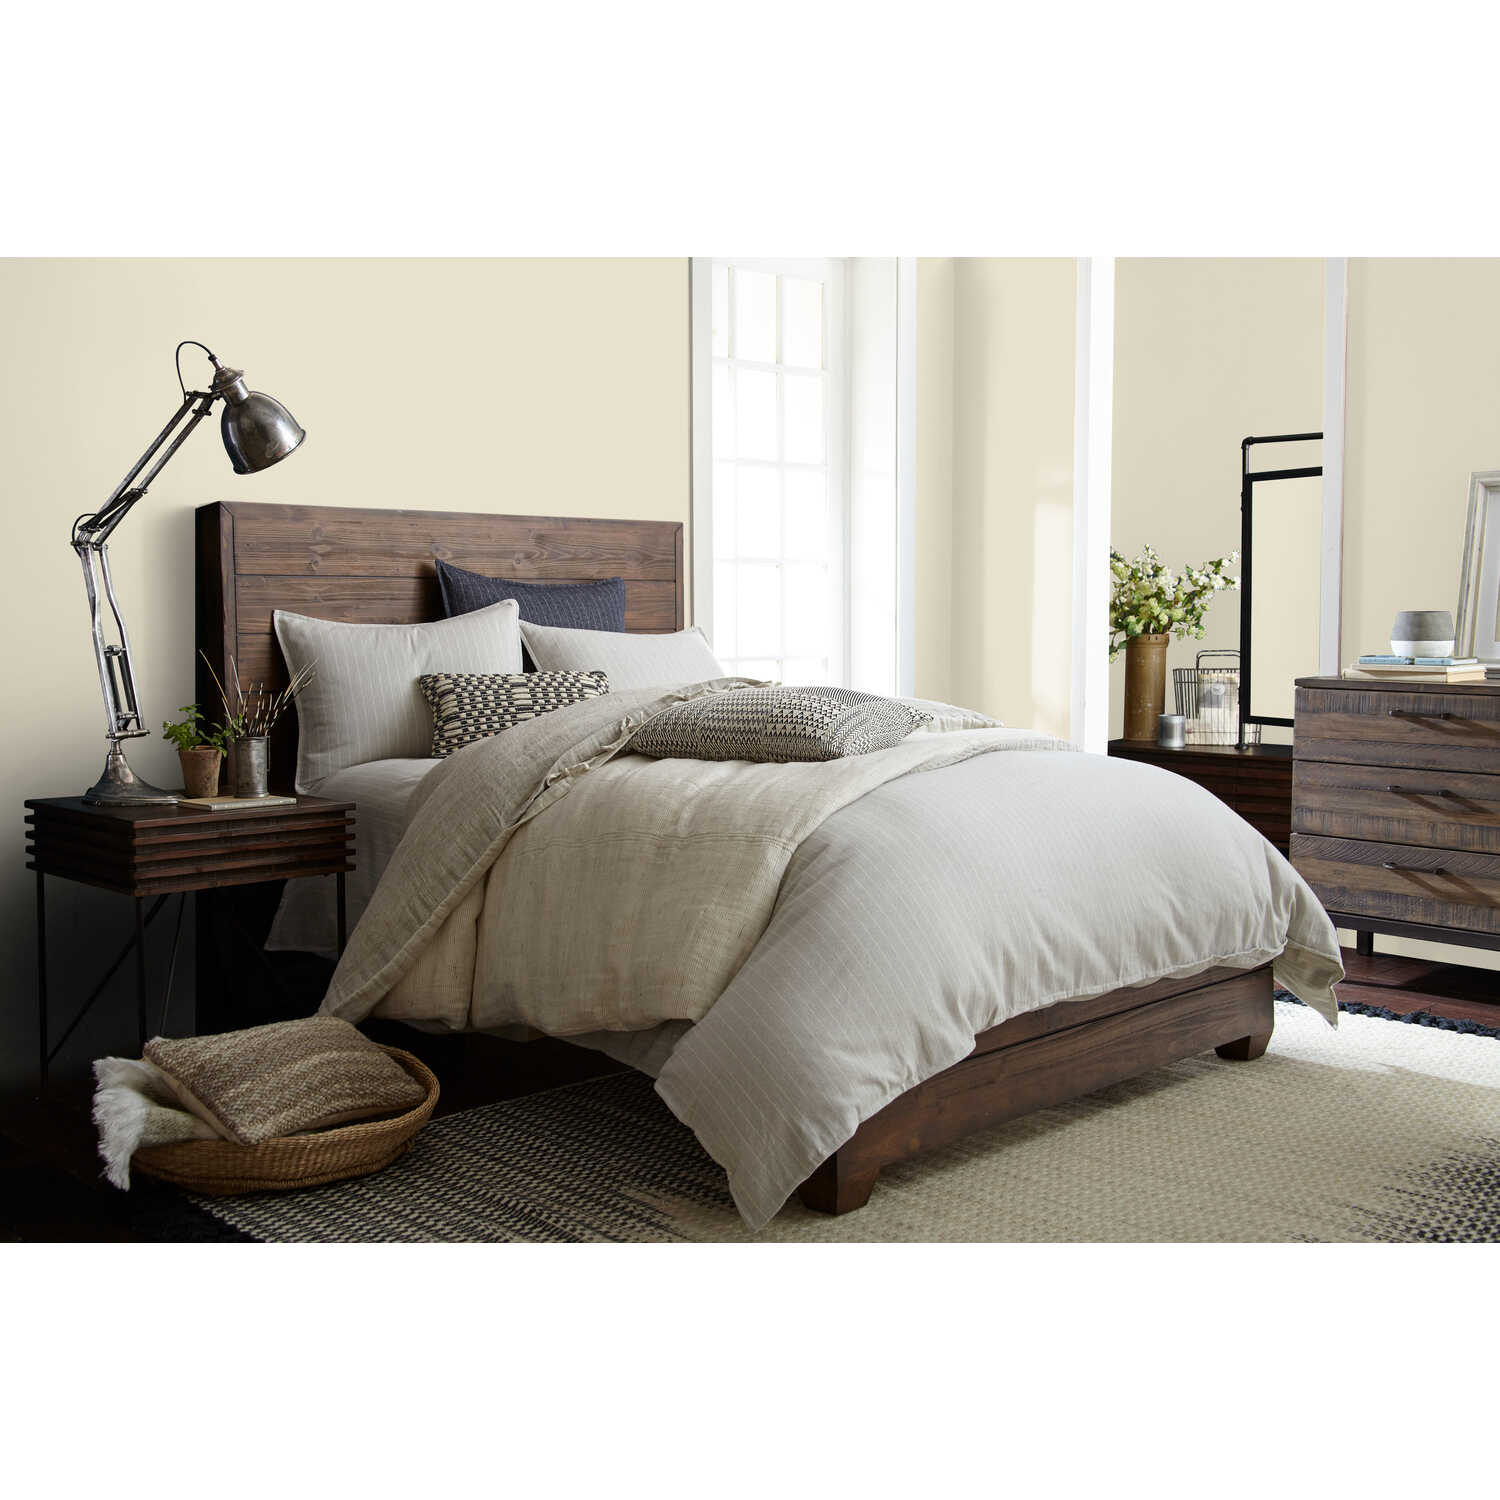 Magnolia Home By Joanna Gaines Eggshell Soft Landing Ultra